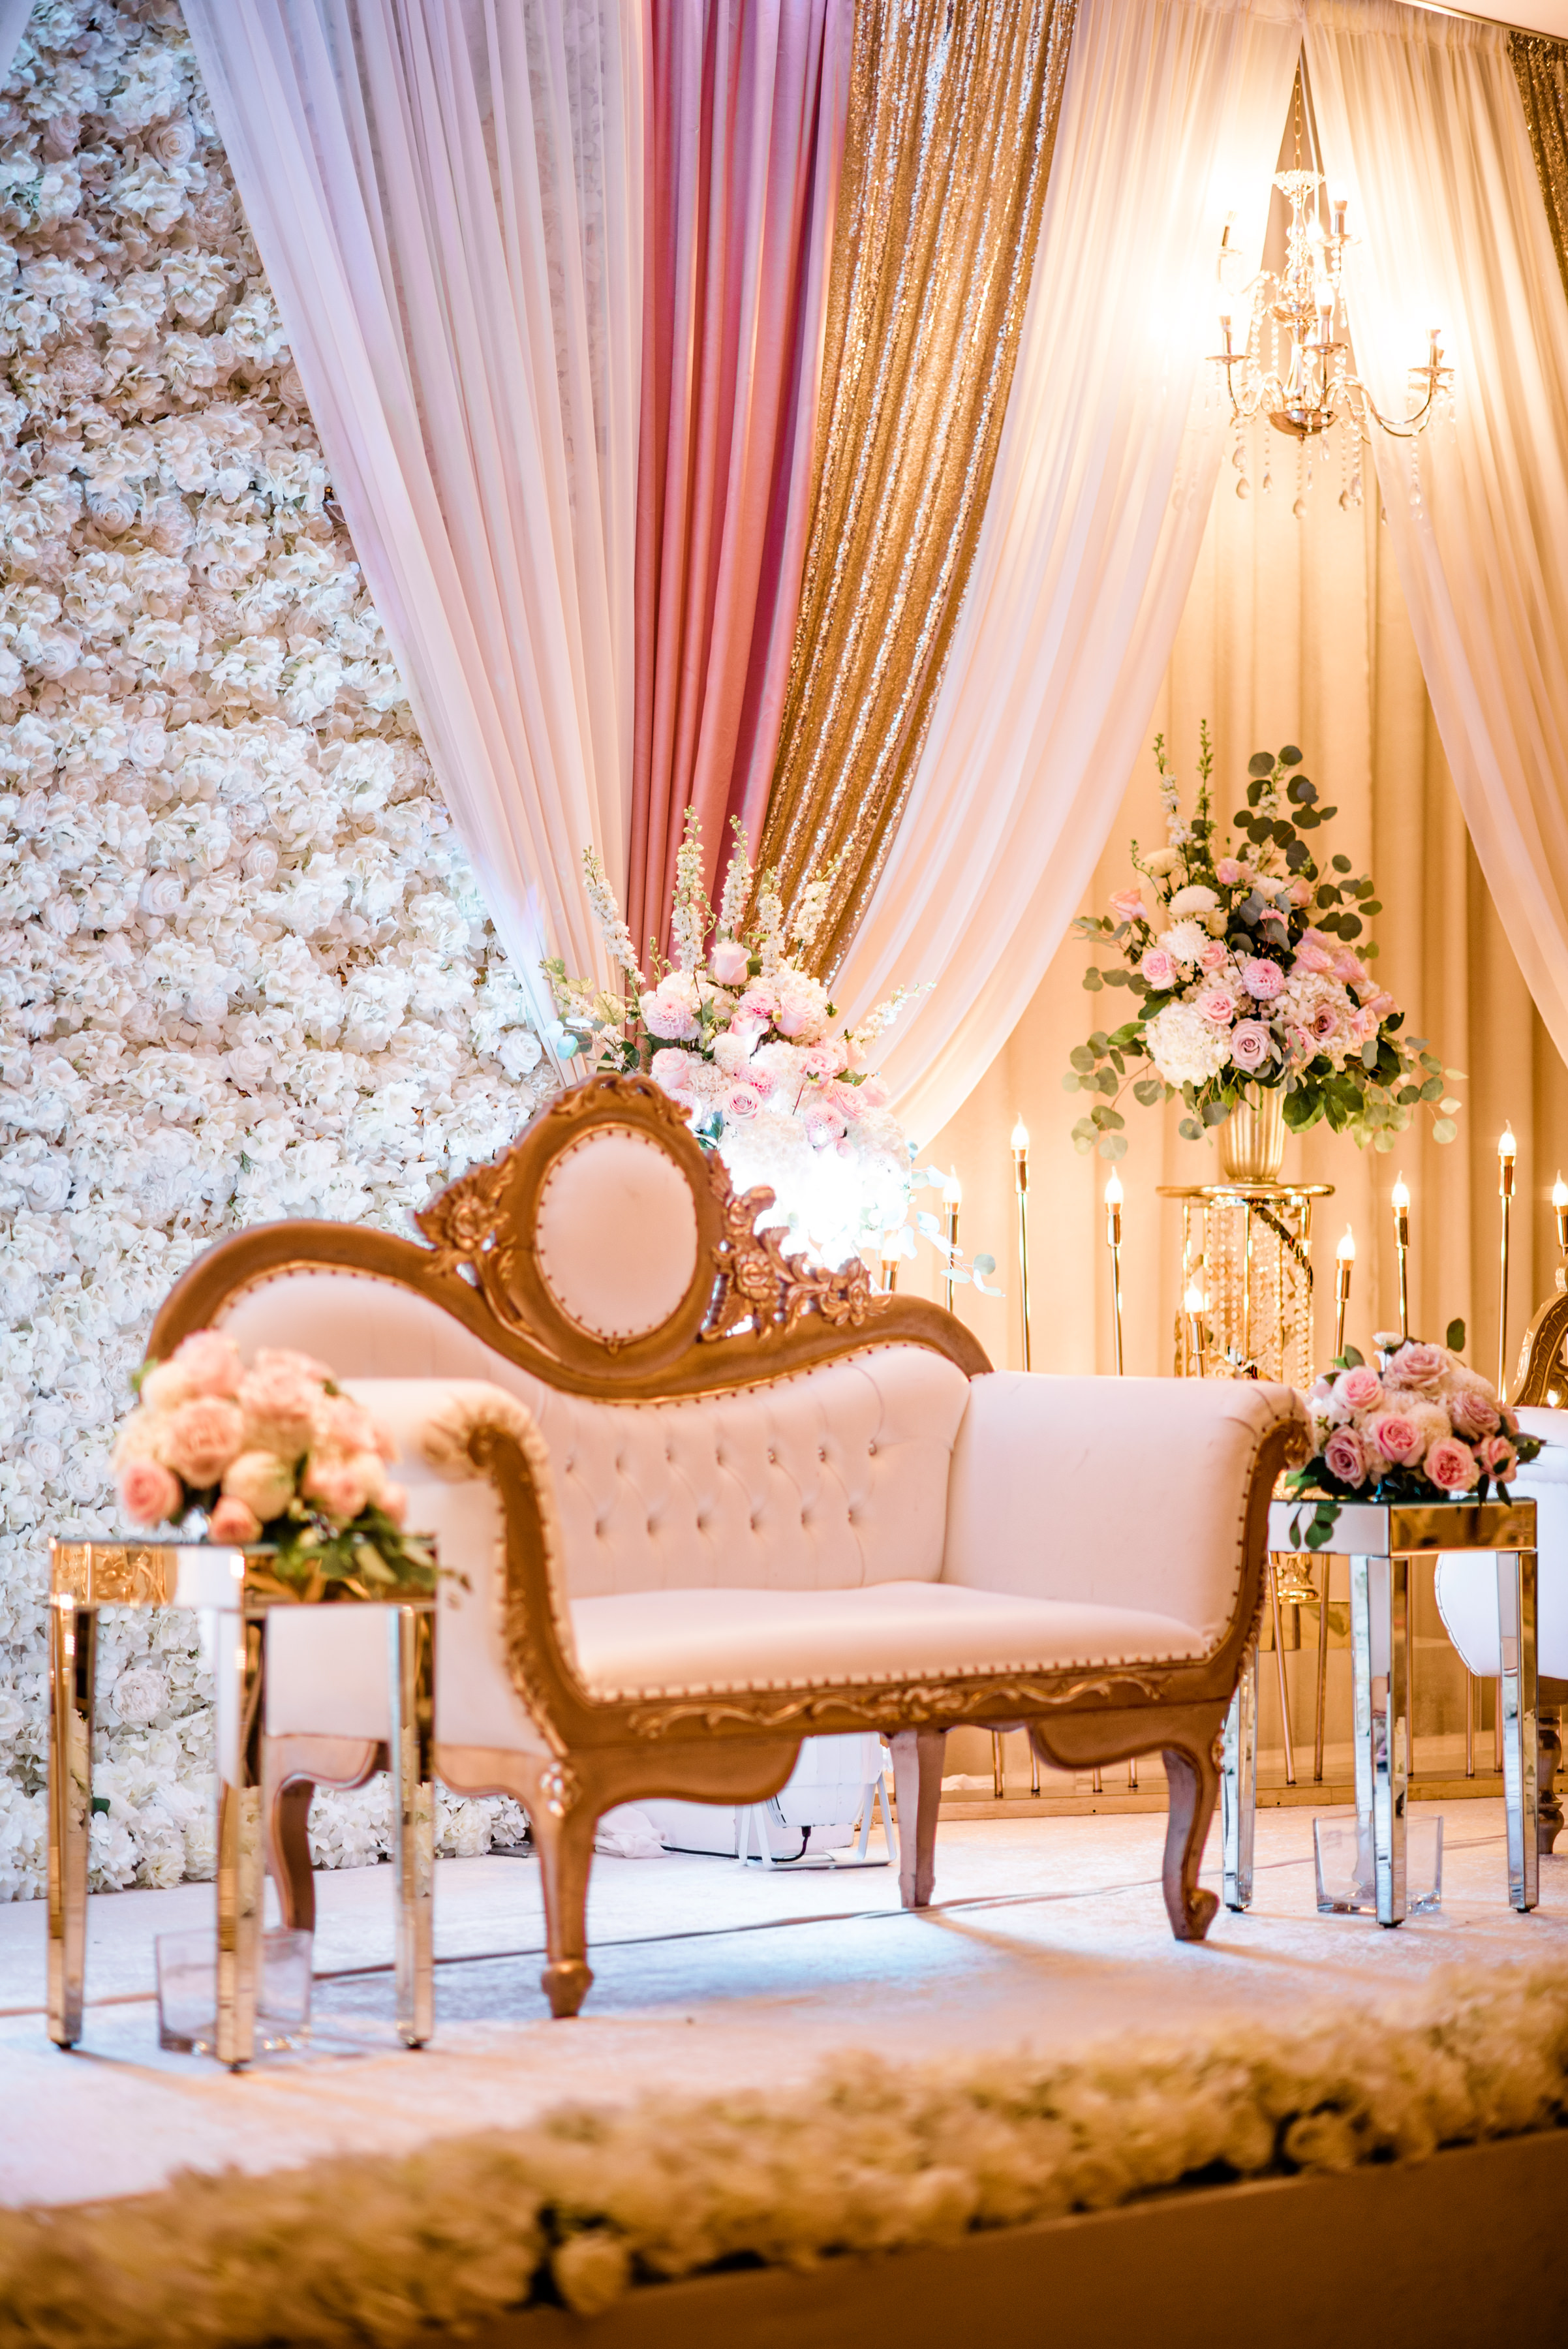 Luxurious loveseat against drapes and flowers and candles - photo by Alante Photography